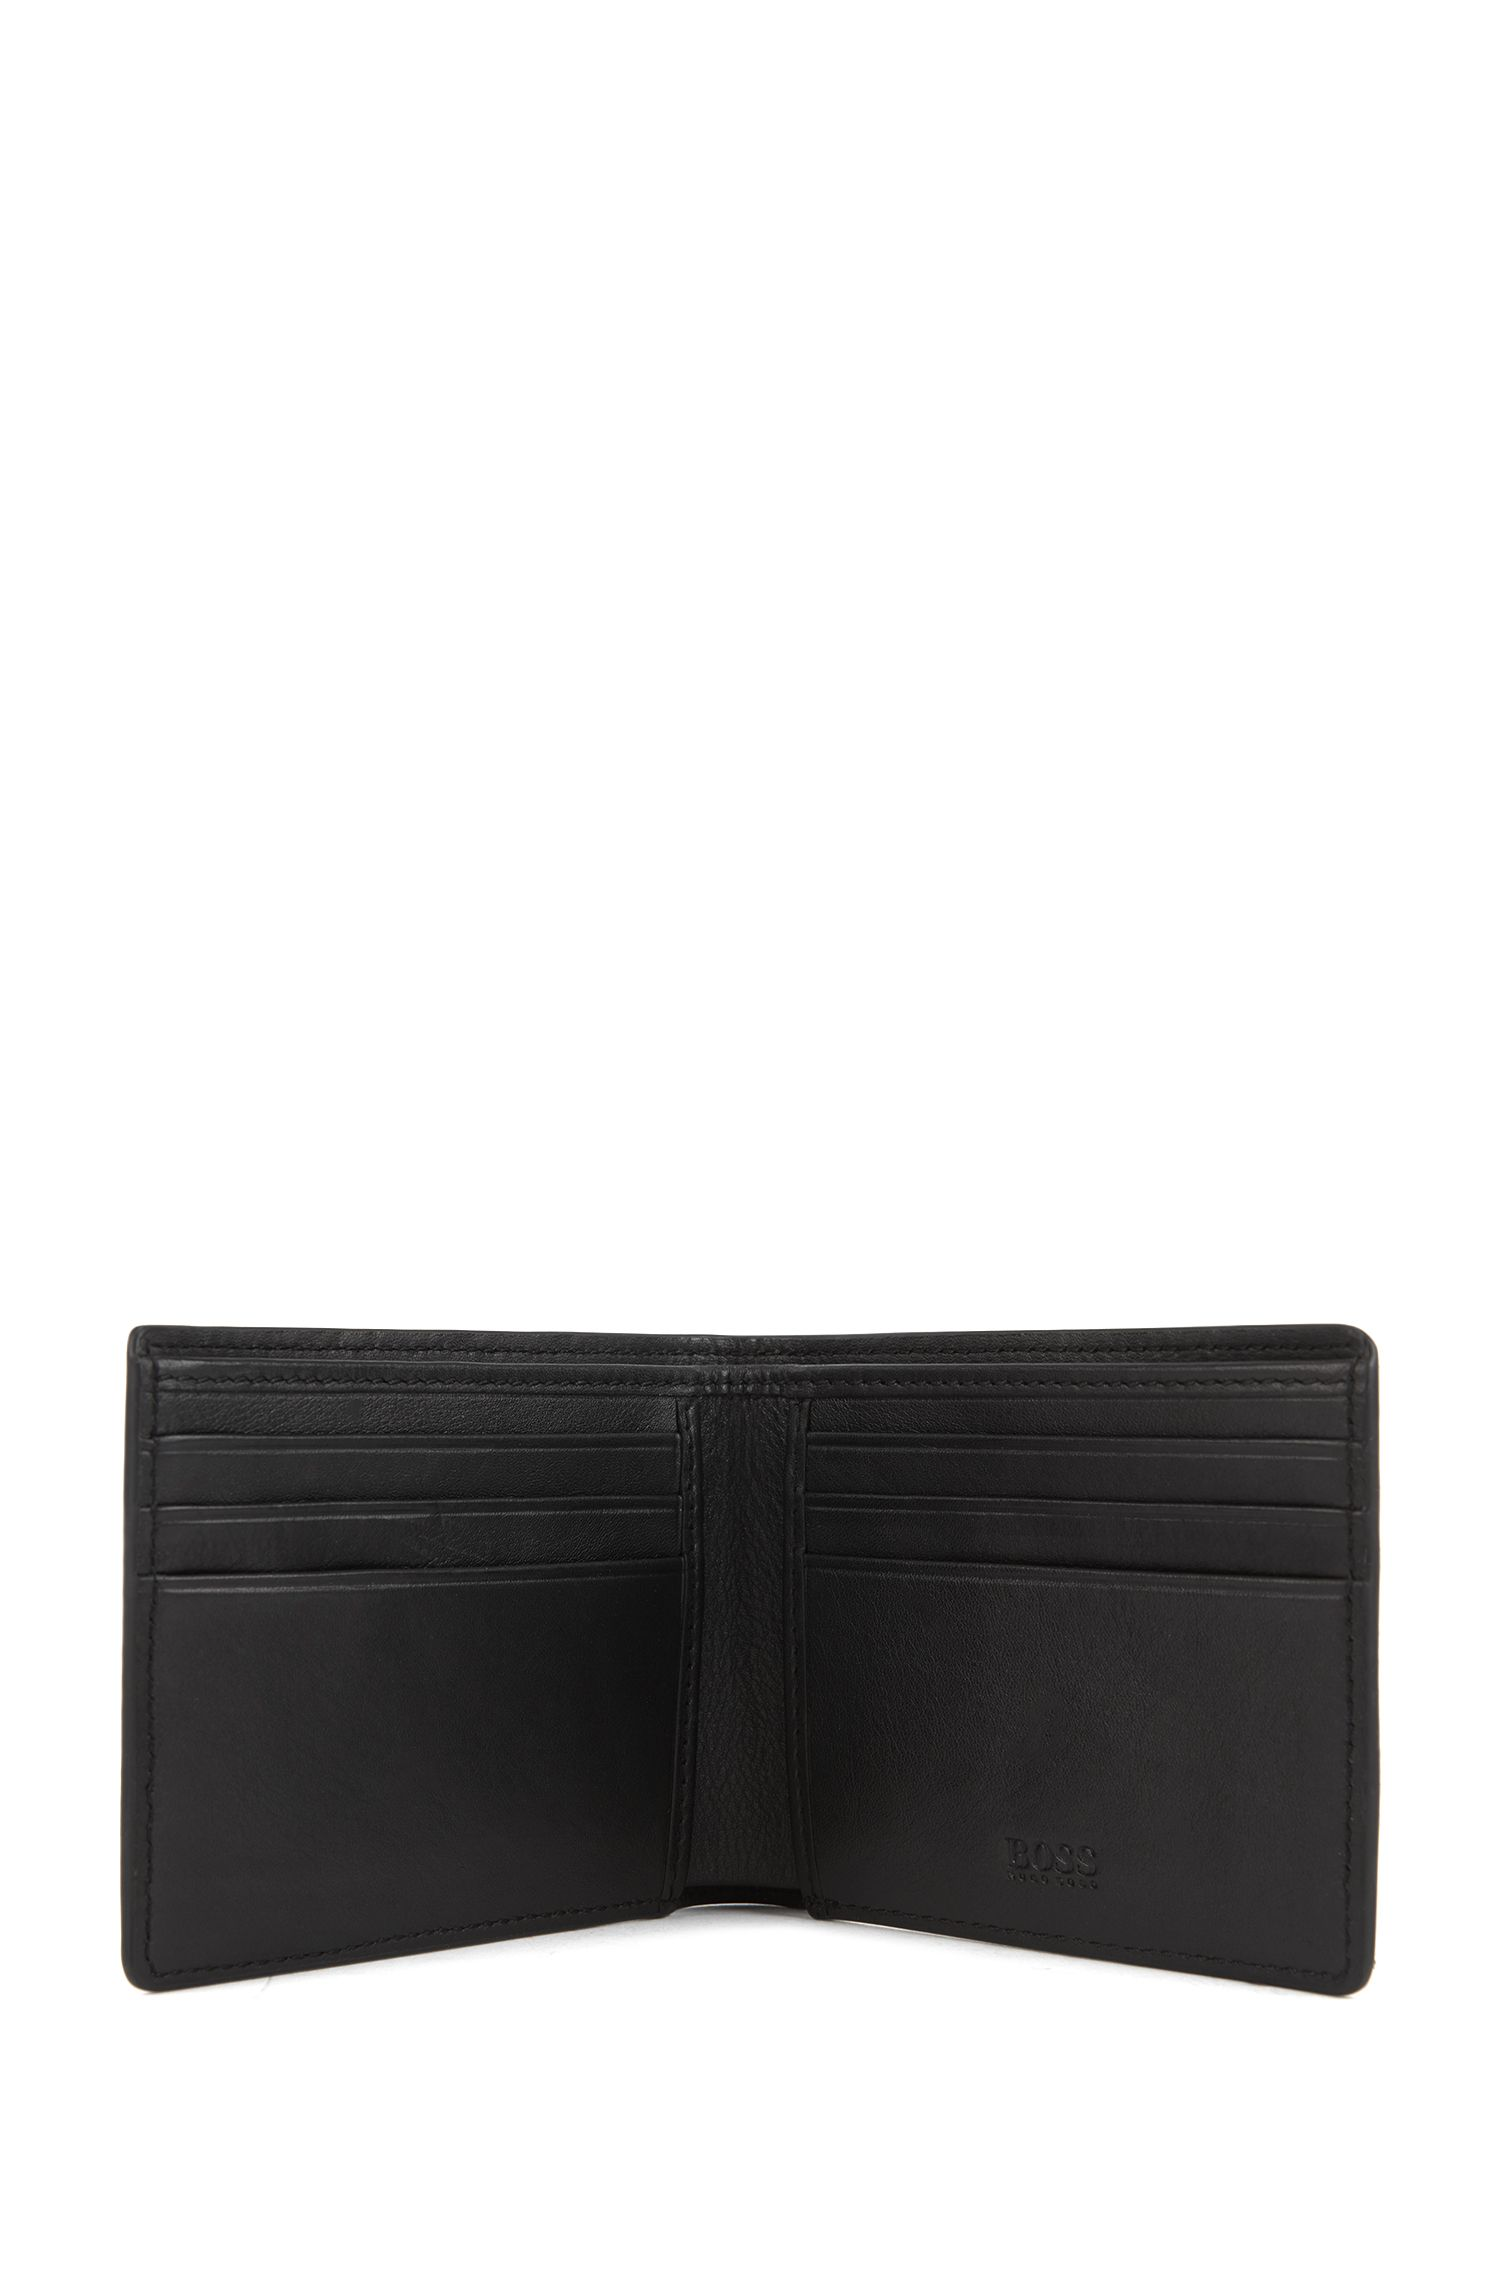 Monogram-embossed leather wallet and card holder gift set, Black